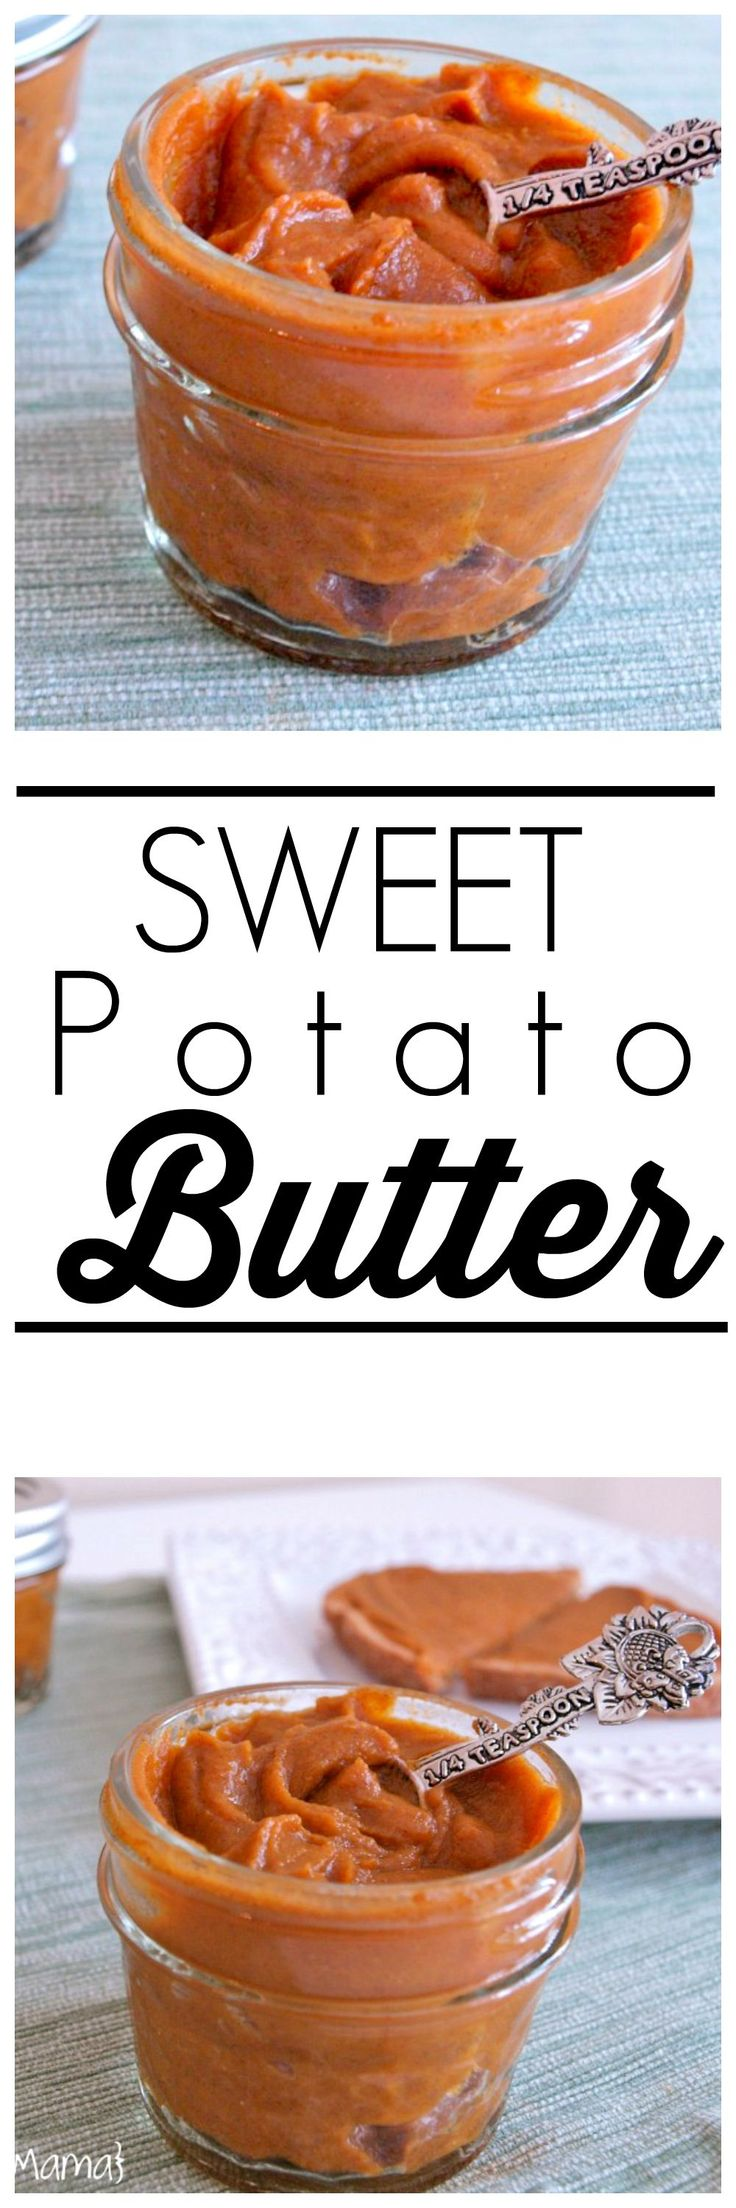 This Sweet Potato Butter recipe is super easy and so nutritious!  This is delicious spread on toast or even fruit.  Why not spread some veggies on your toast?!